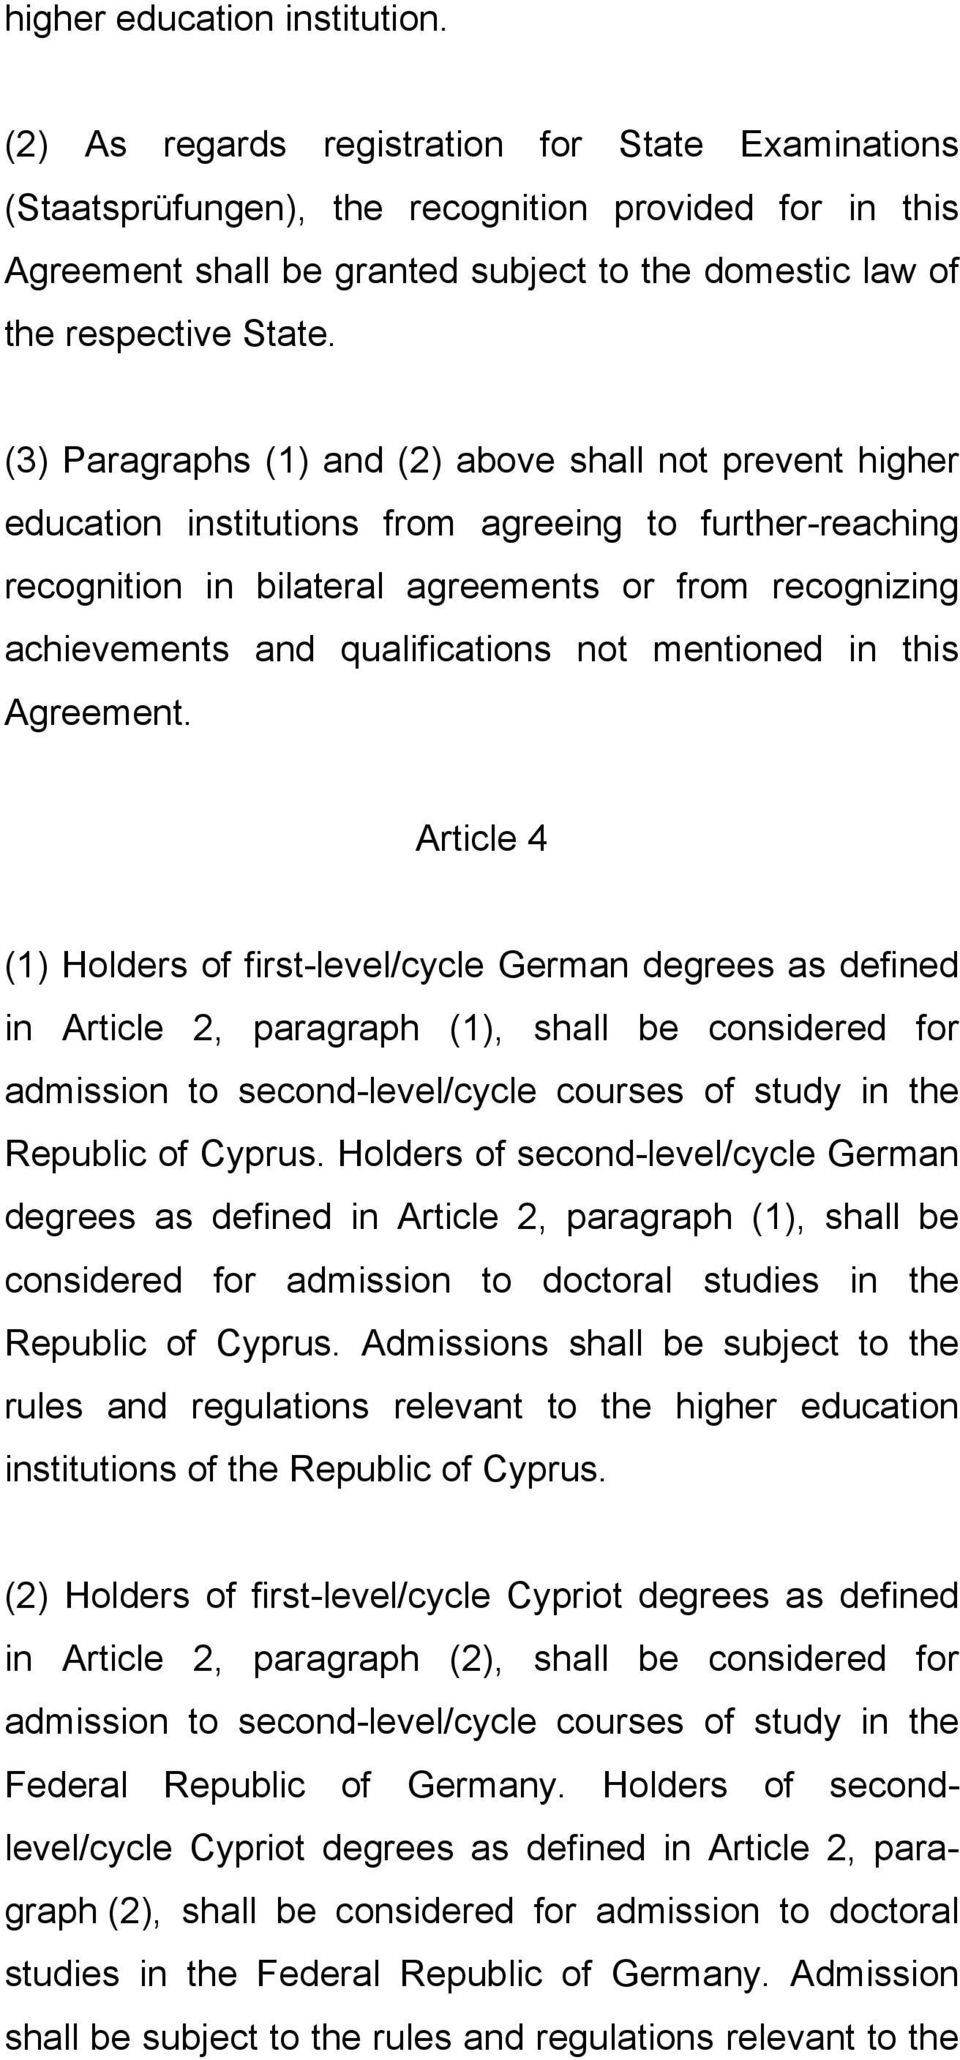 (3) Paragraphs (1) and (2) above shall not prevent higher education institutions from agreeing to further-reaching recognition in bilateral agreements or from recognizing achievements and